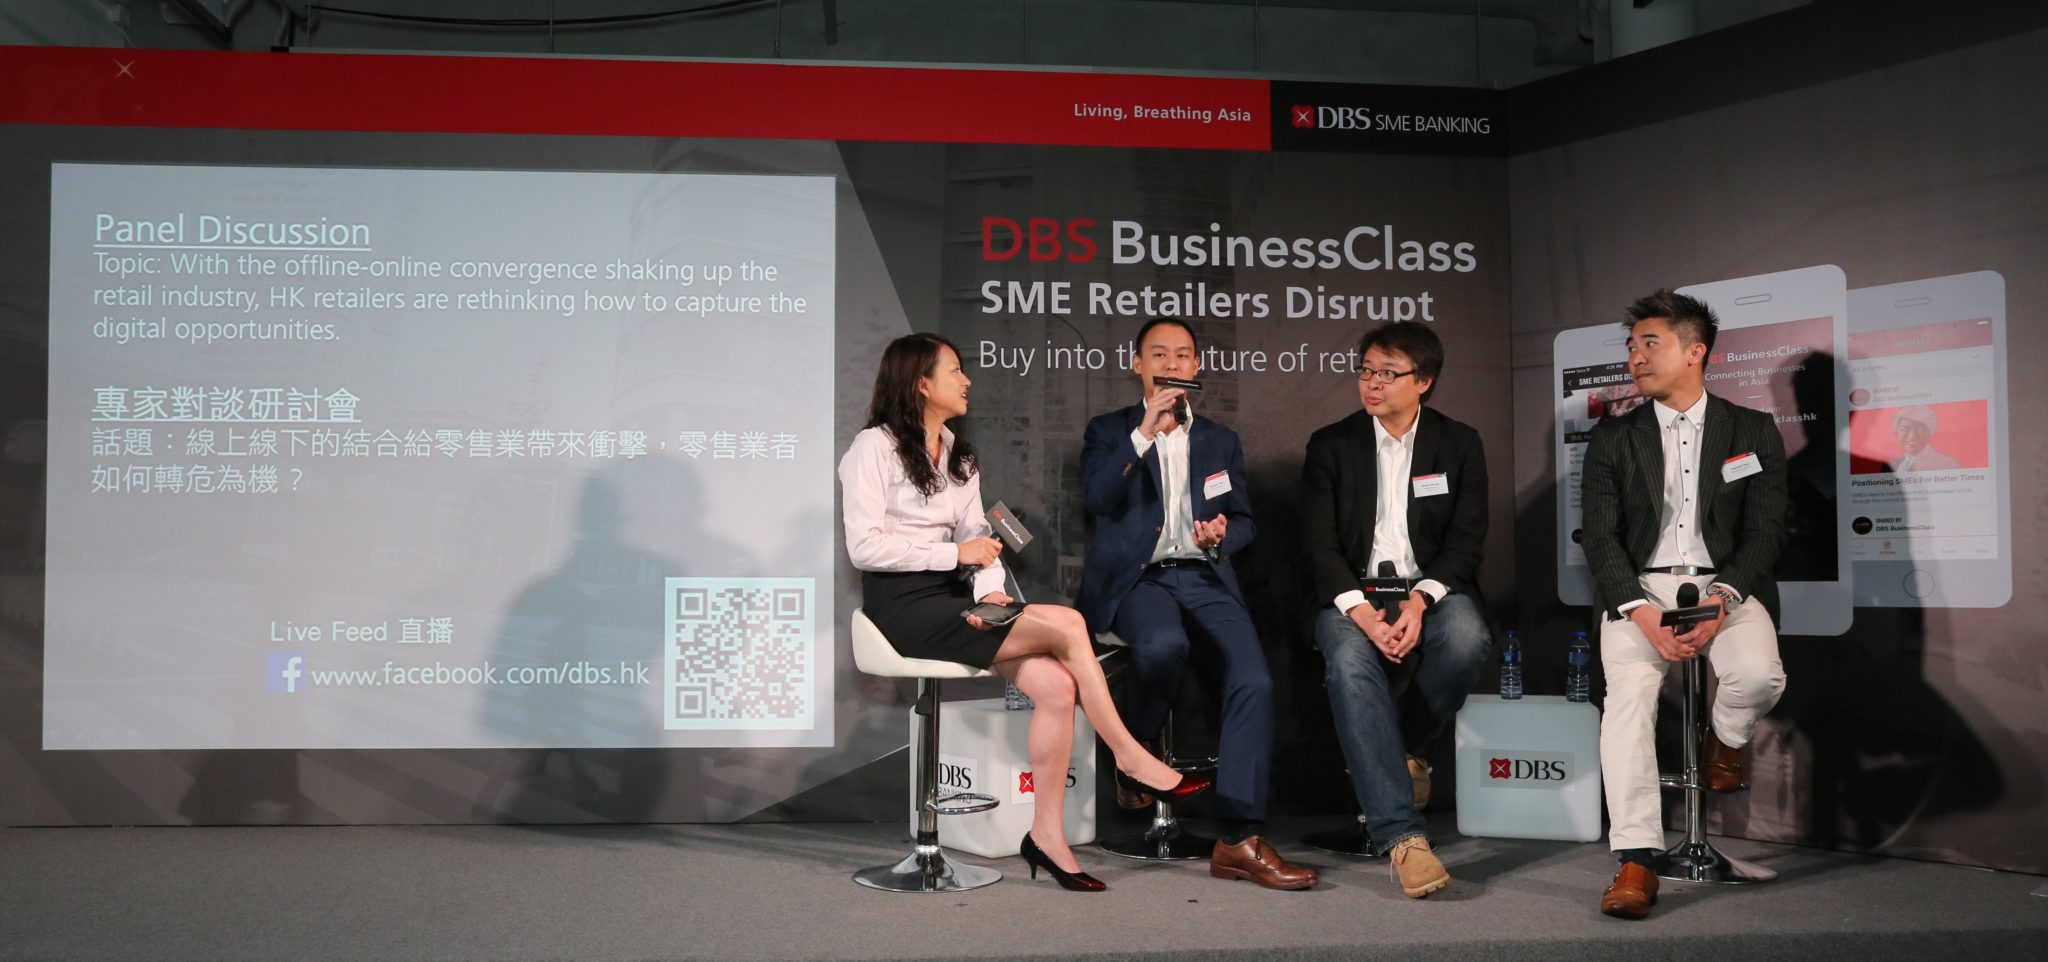 A distinguished panel of key opinion leaders, including (left to right) Ping Wong, Director of Internet Society Hong Kong, Kenneth She, Head of Uber Hong Kong, Erwin Huang, Deputy Chairman of TSL Jewellery (International) Ltd., and Vincent Tsui, Chief Marketing Officer of Next Digital, shared their insights at the DBS BusinessClass launch event Panel Discussion session.